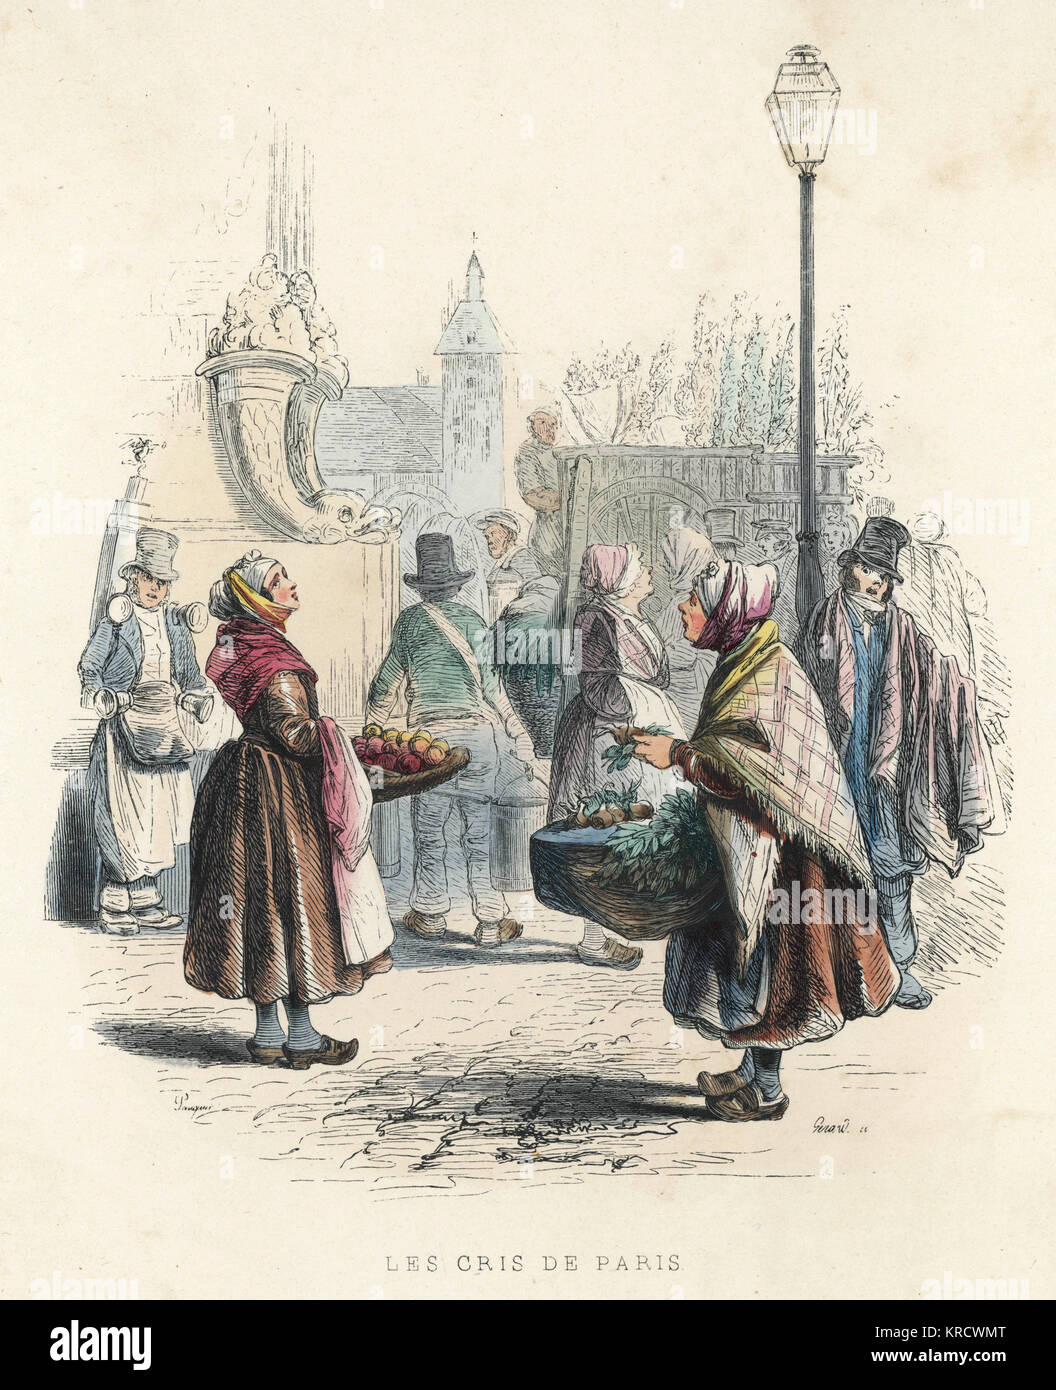 The cries of various street traders ring out in Paris Date: 1850 - Stock Image